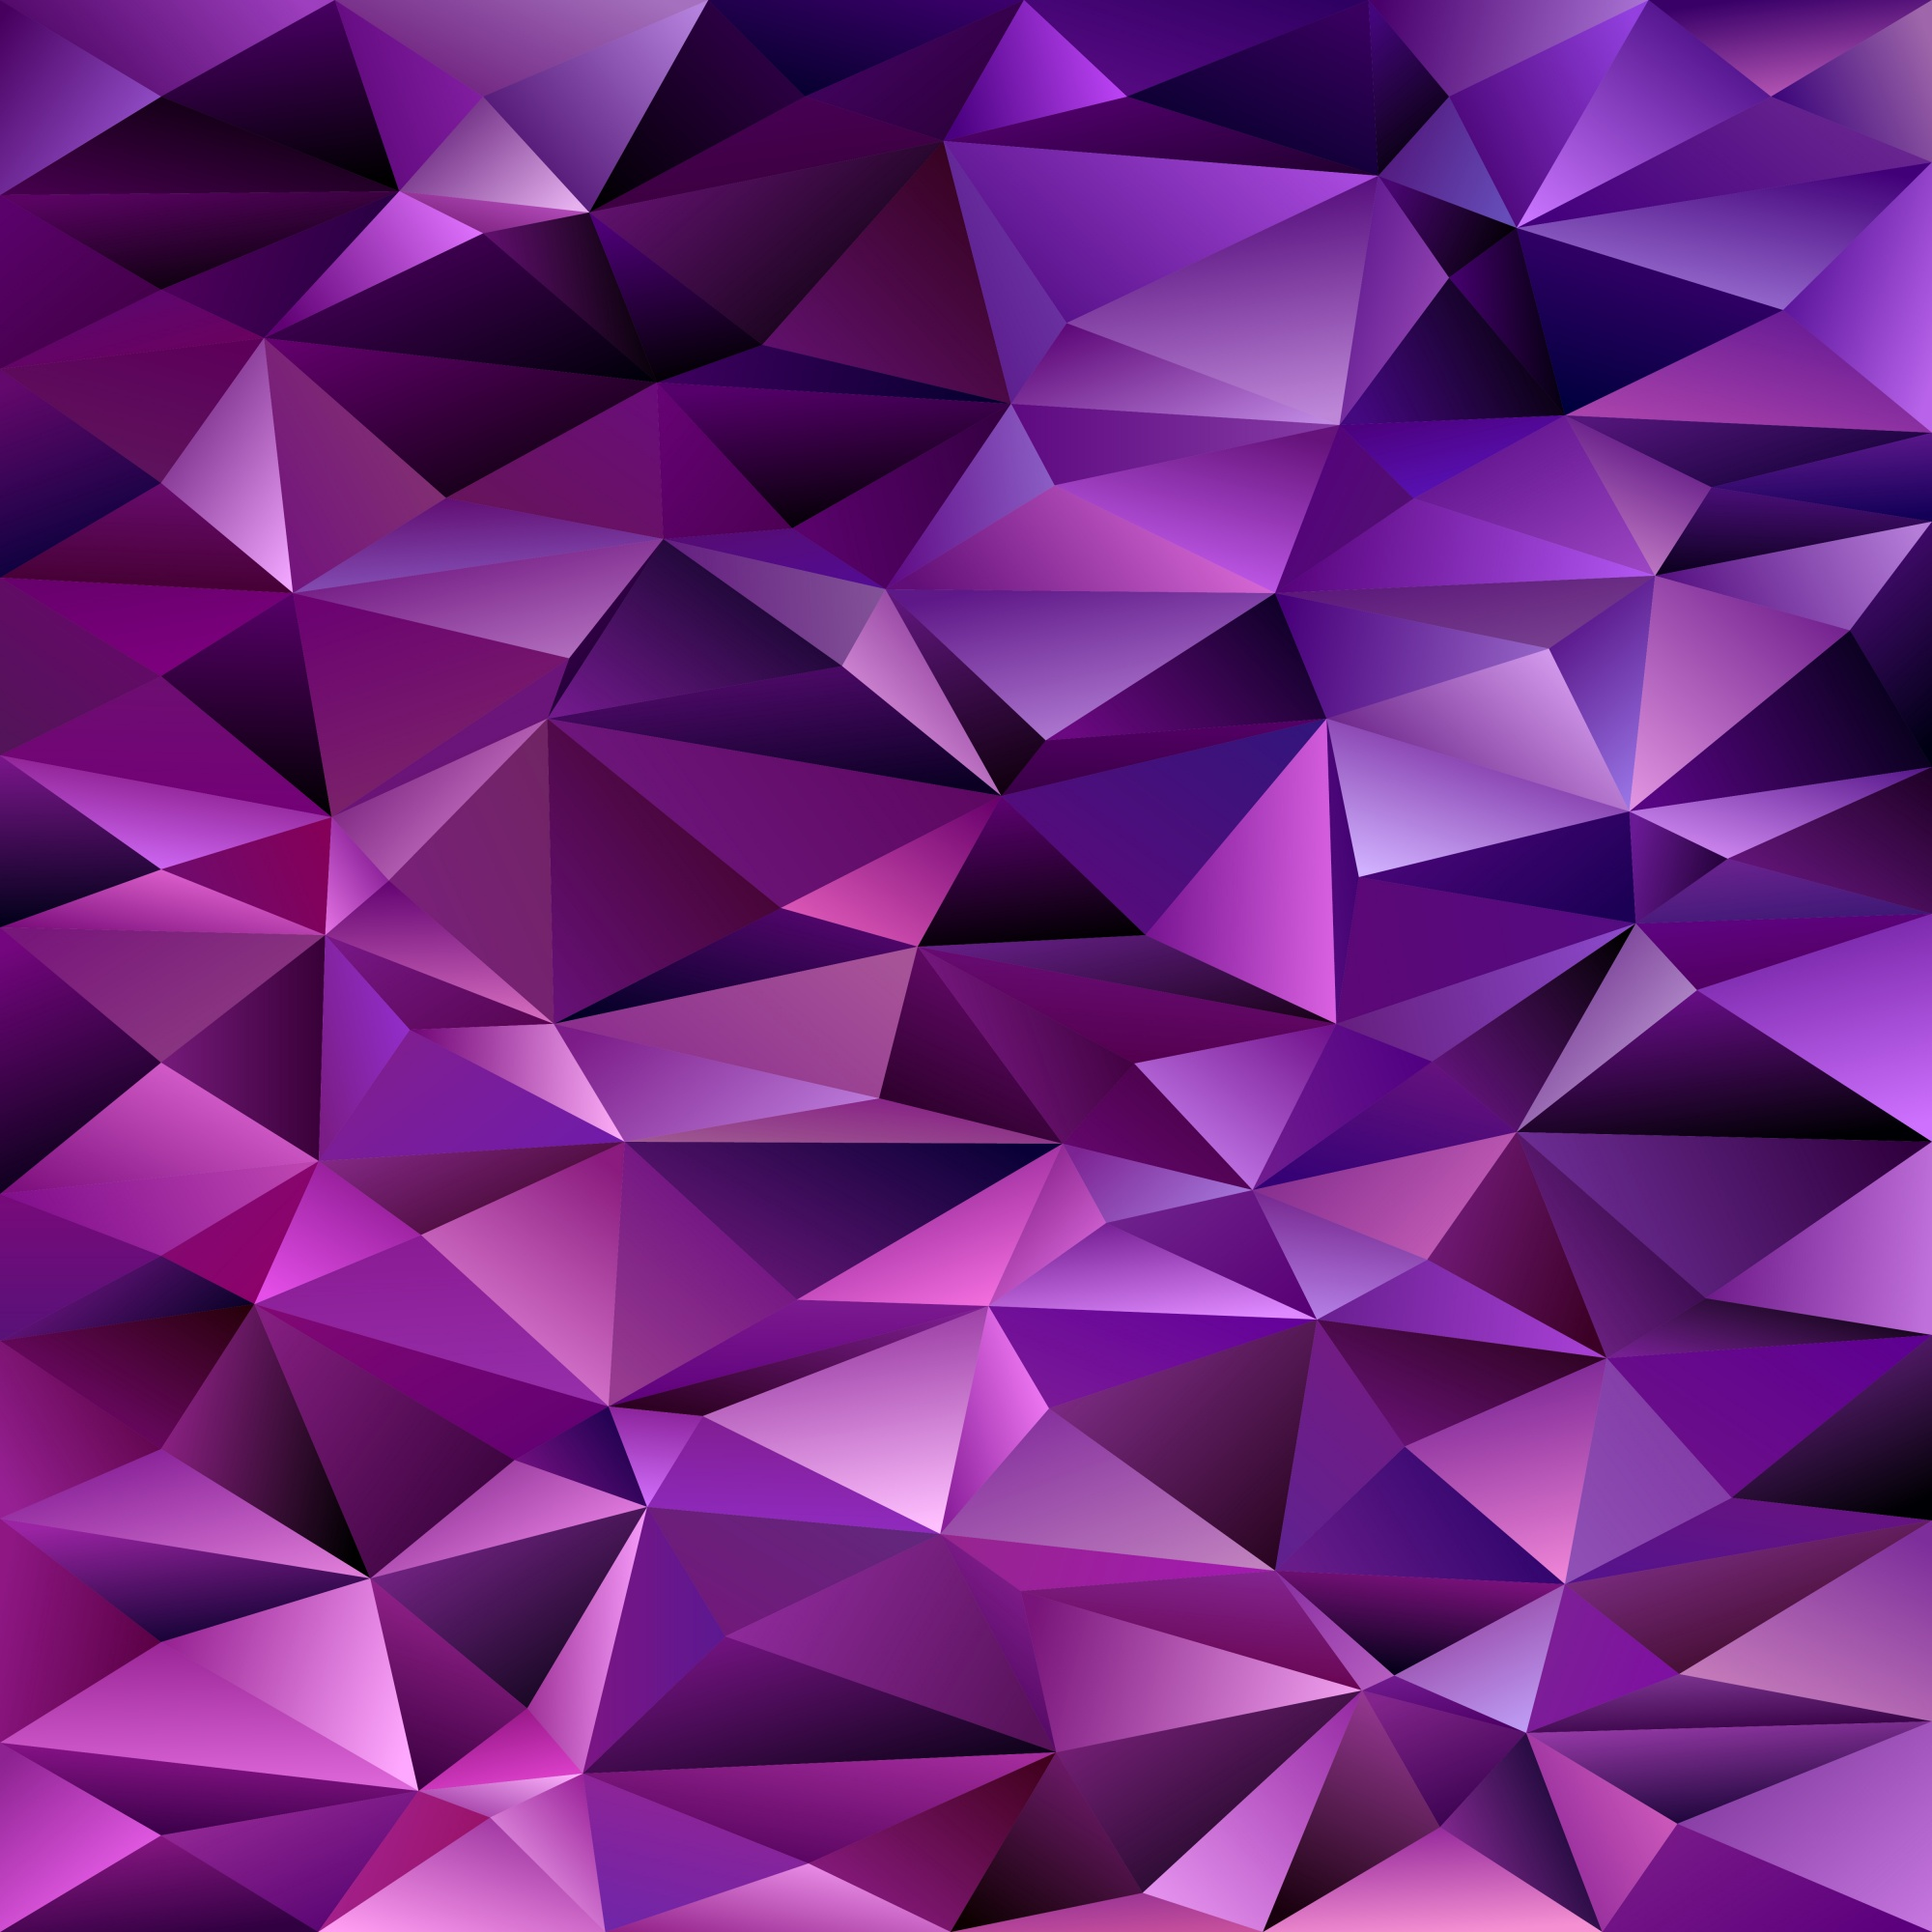 Geometric abstract chaotic triangle pattern background - mosaic vector graphic design from colored triangles